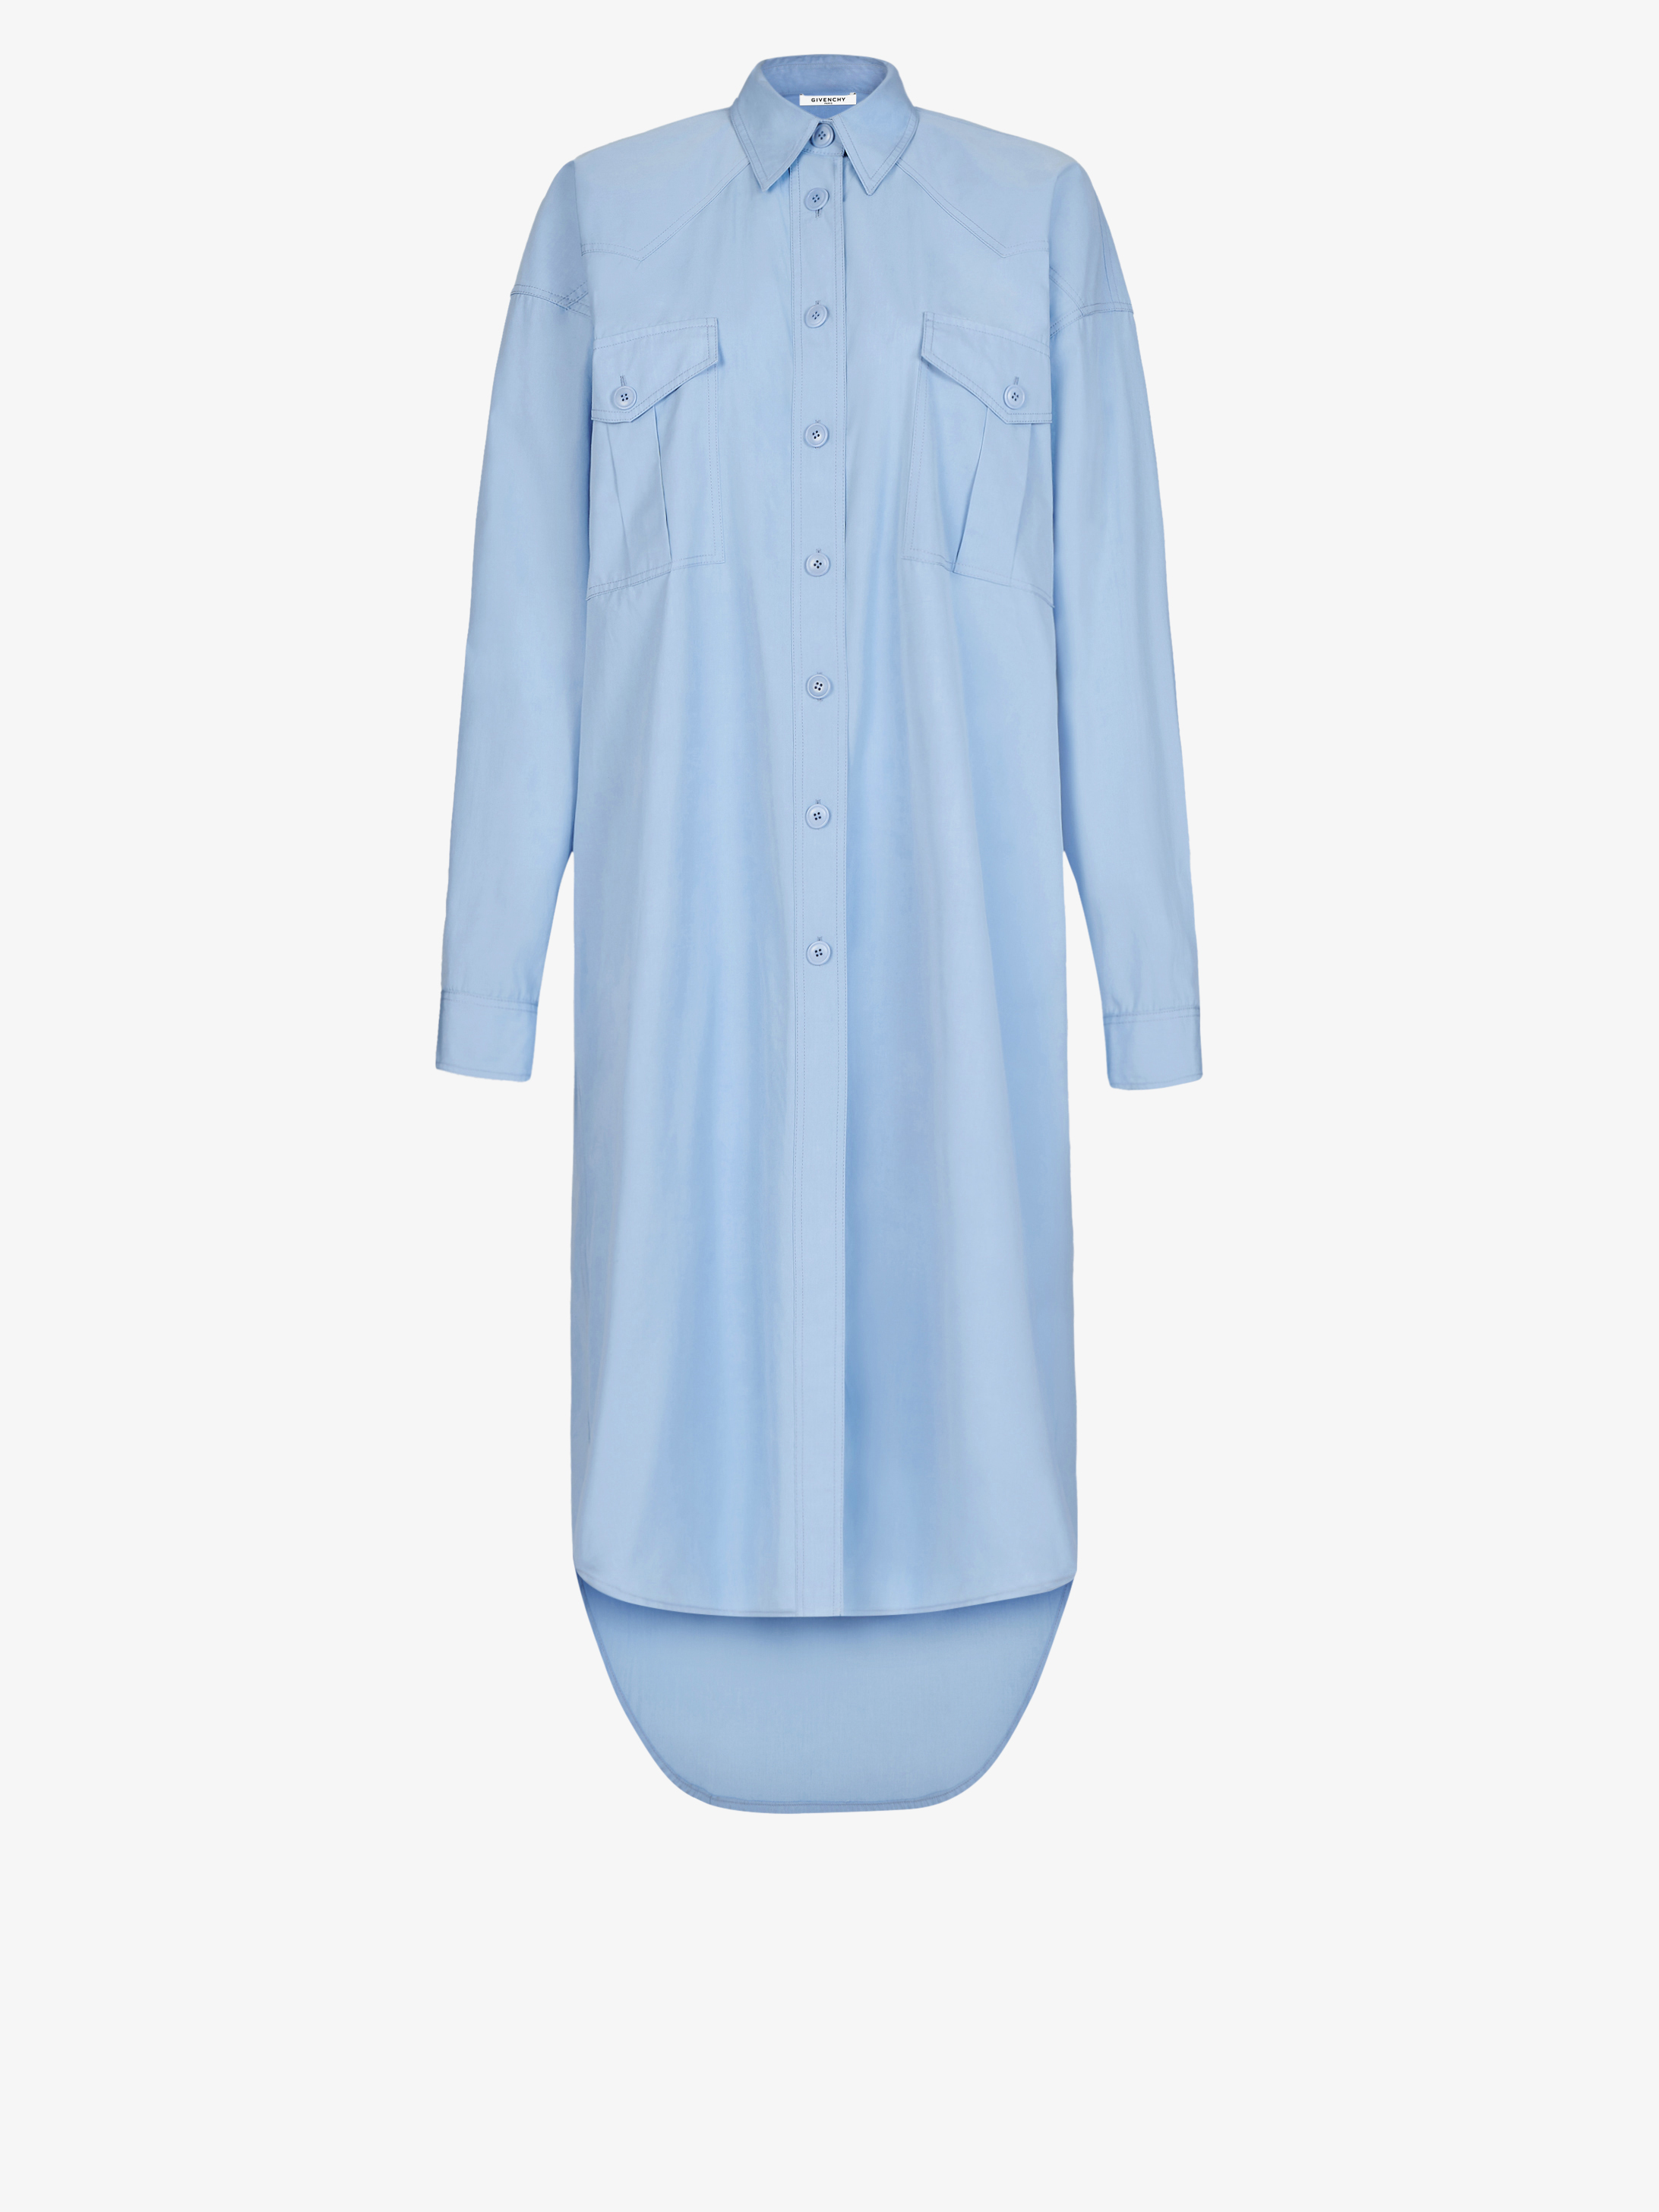 Oversized shirt dress in cotton